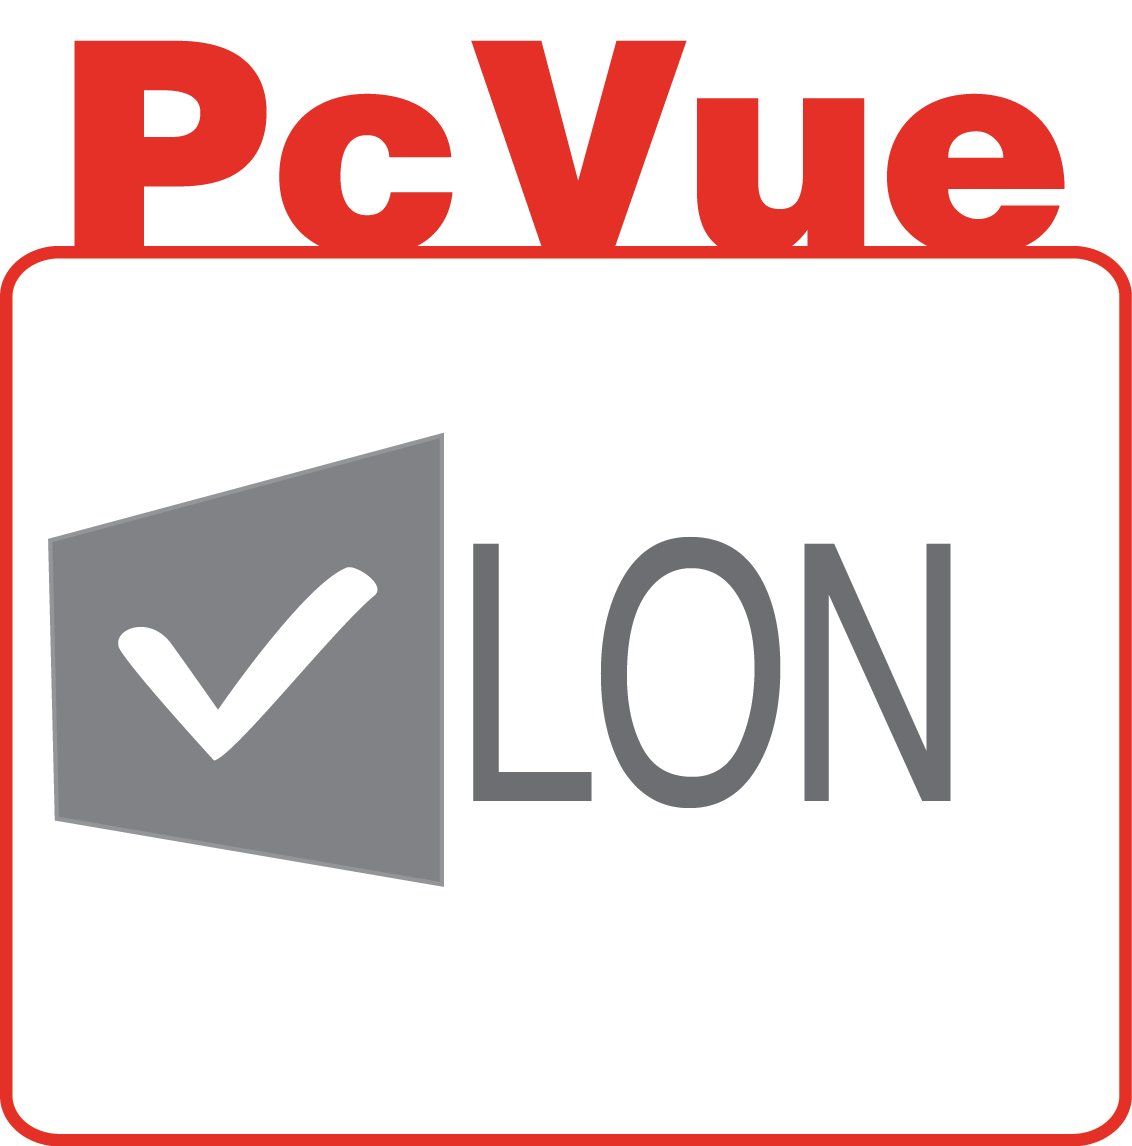 PcVue icon features LON